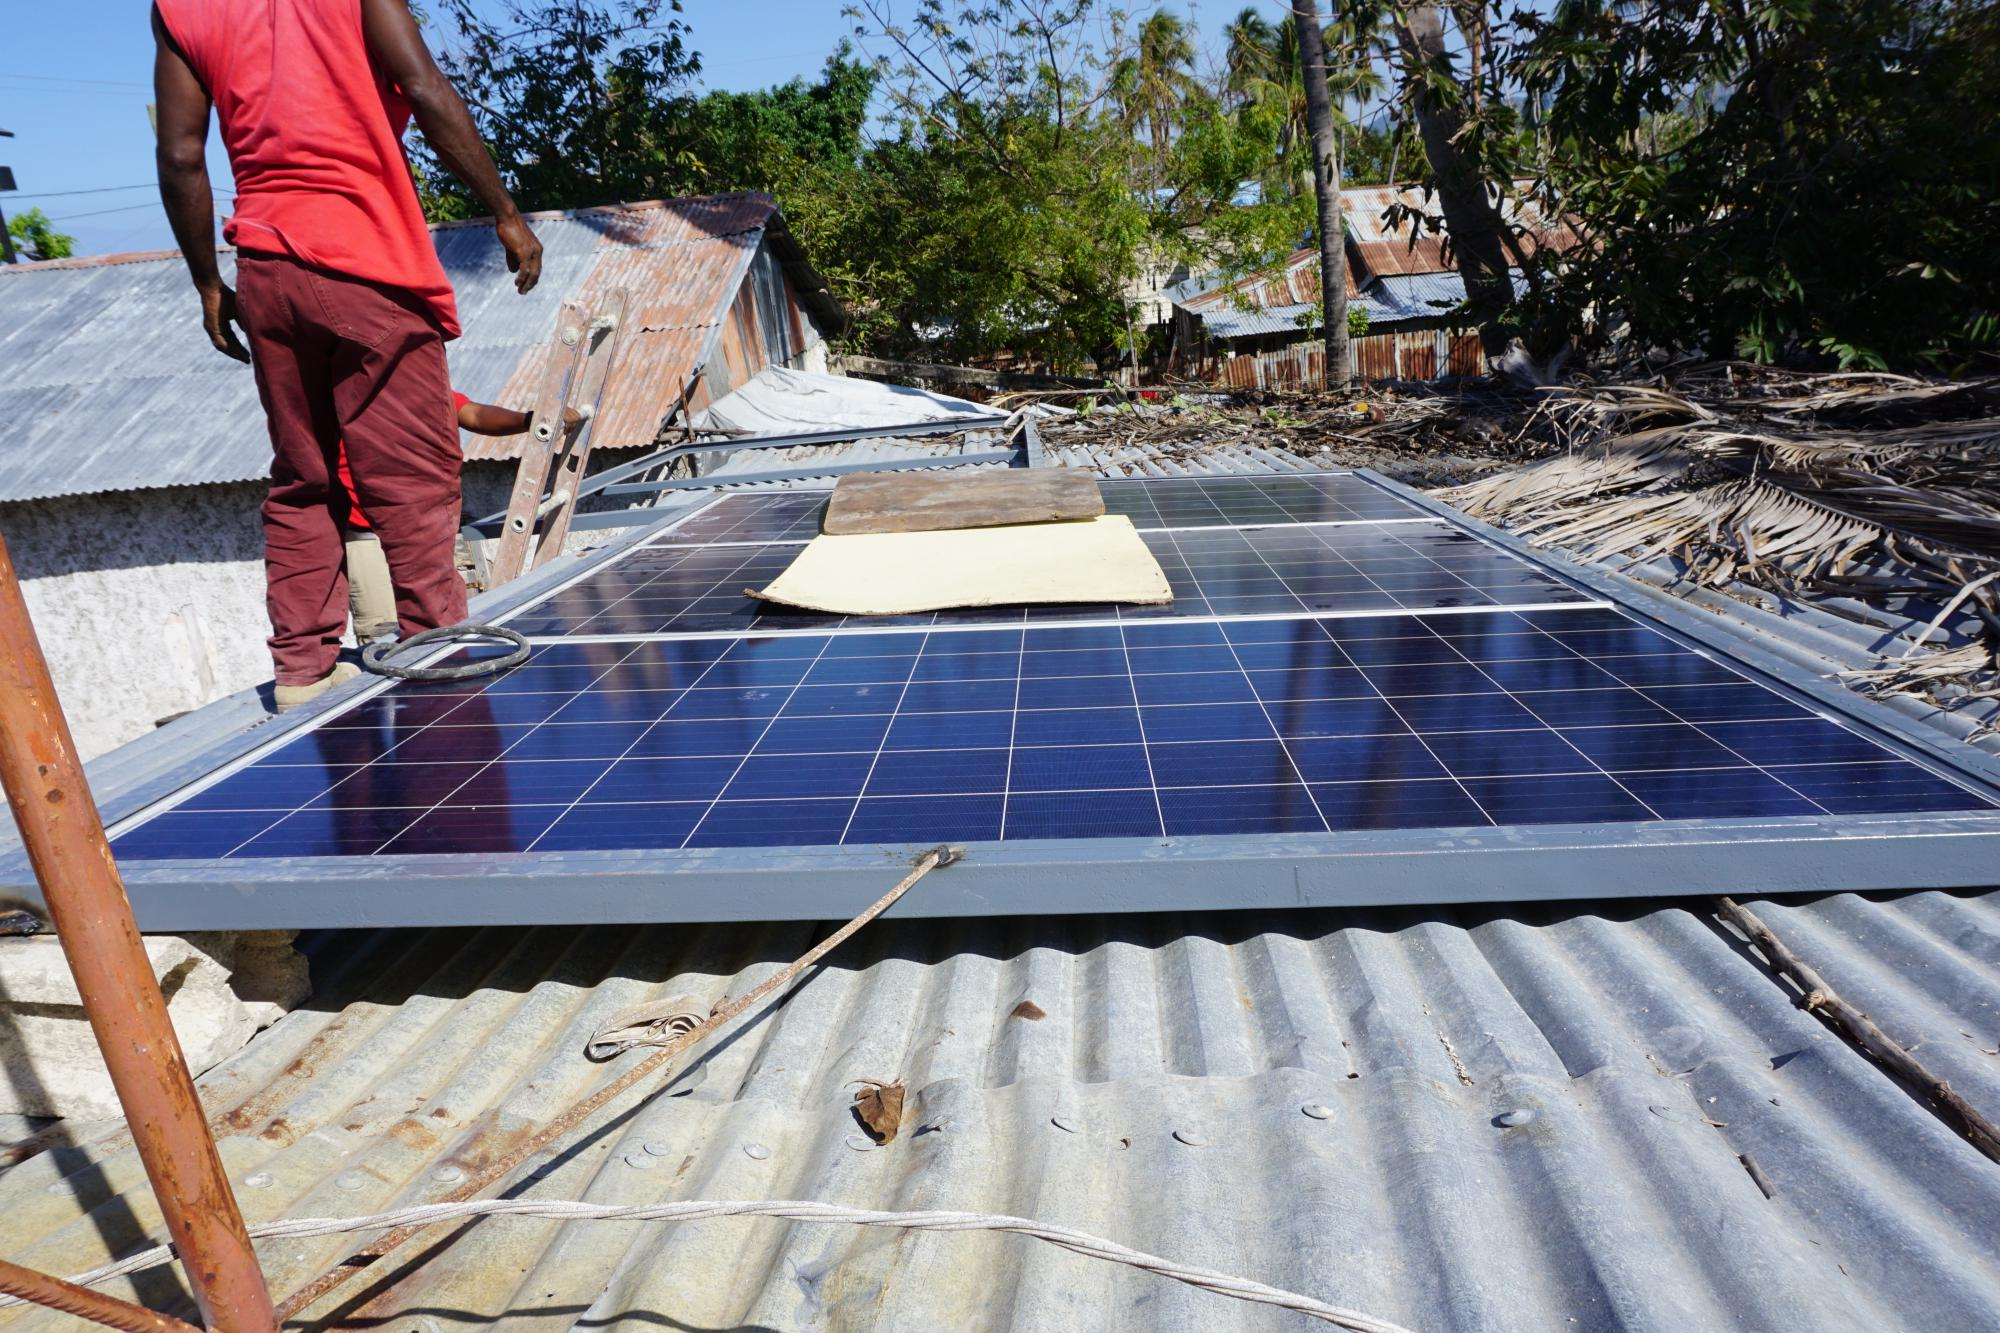 Sustainability of operations increasingly becomes a priority for the ETC – the radio stations will be powered by solar panels, to ensure energy efficiency. Photo: WFP  / Christopher Alagna